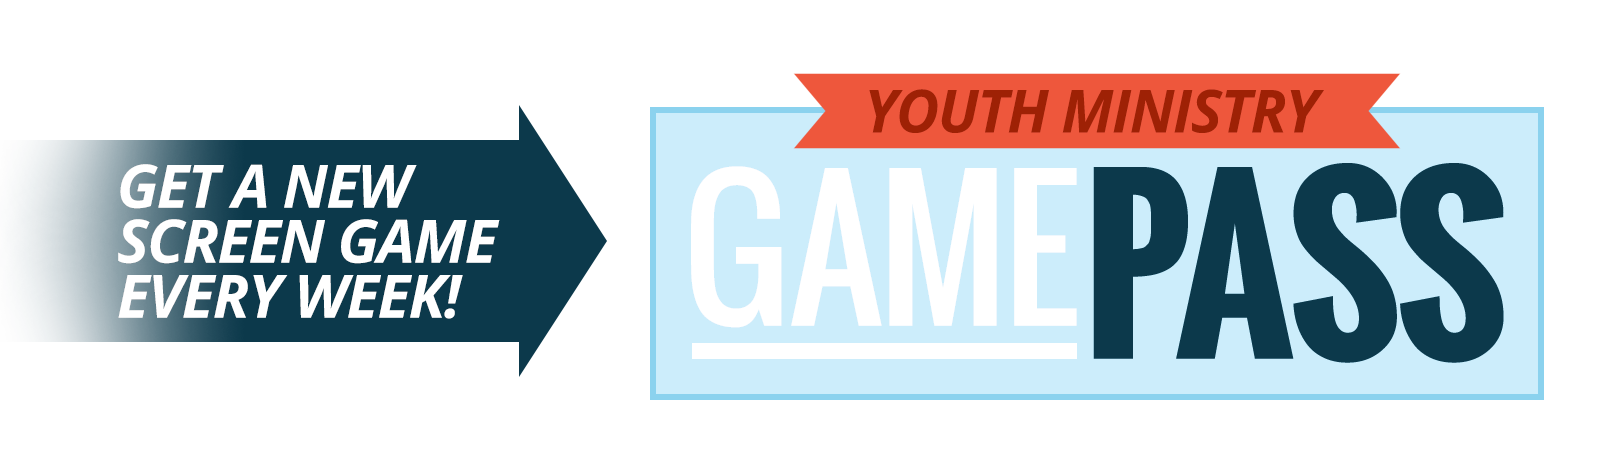 Youth Ministry GamePass